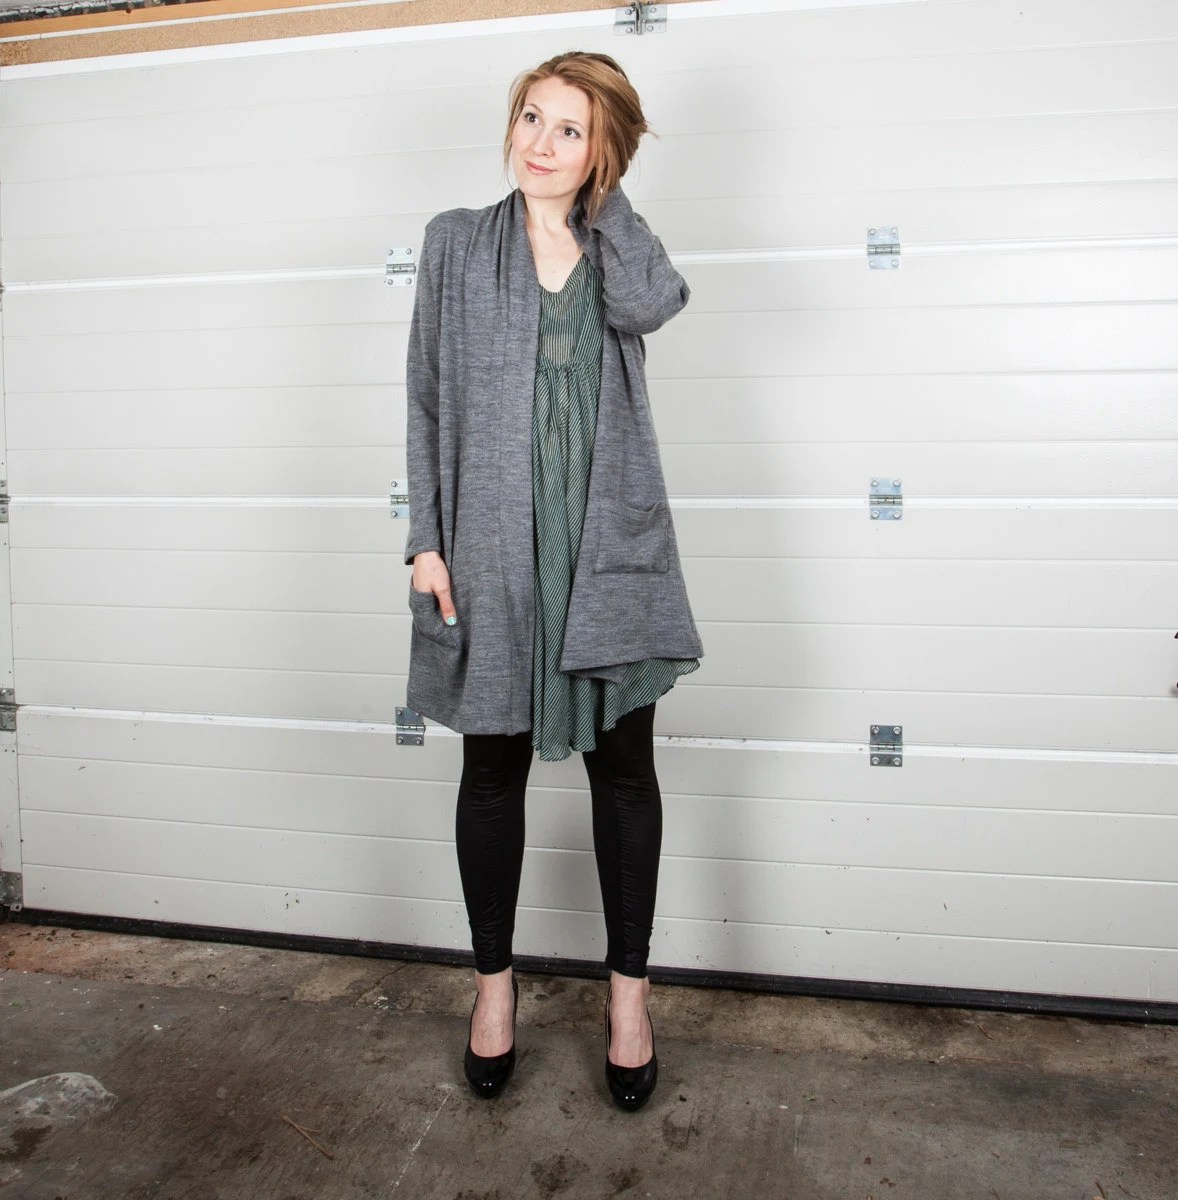 Cecilia long grey cardigan, vegan, pockets, bohemian, comfy, leggings, oversized, big cardigan, size large, collar - raori